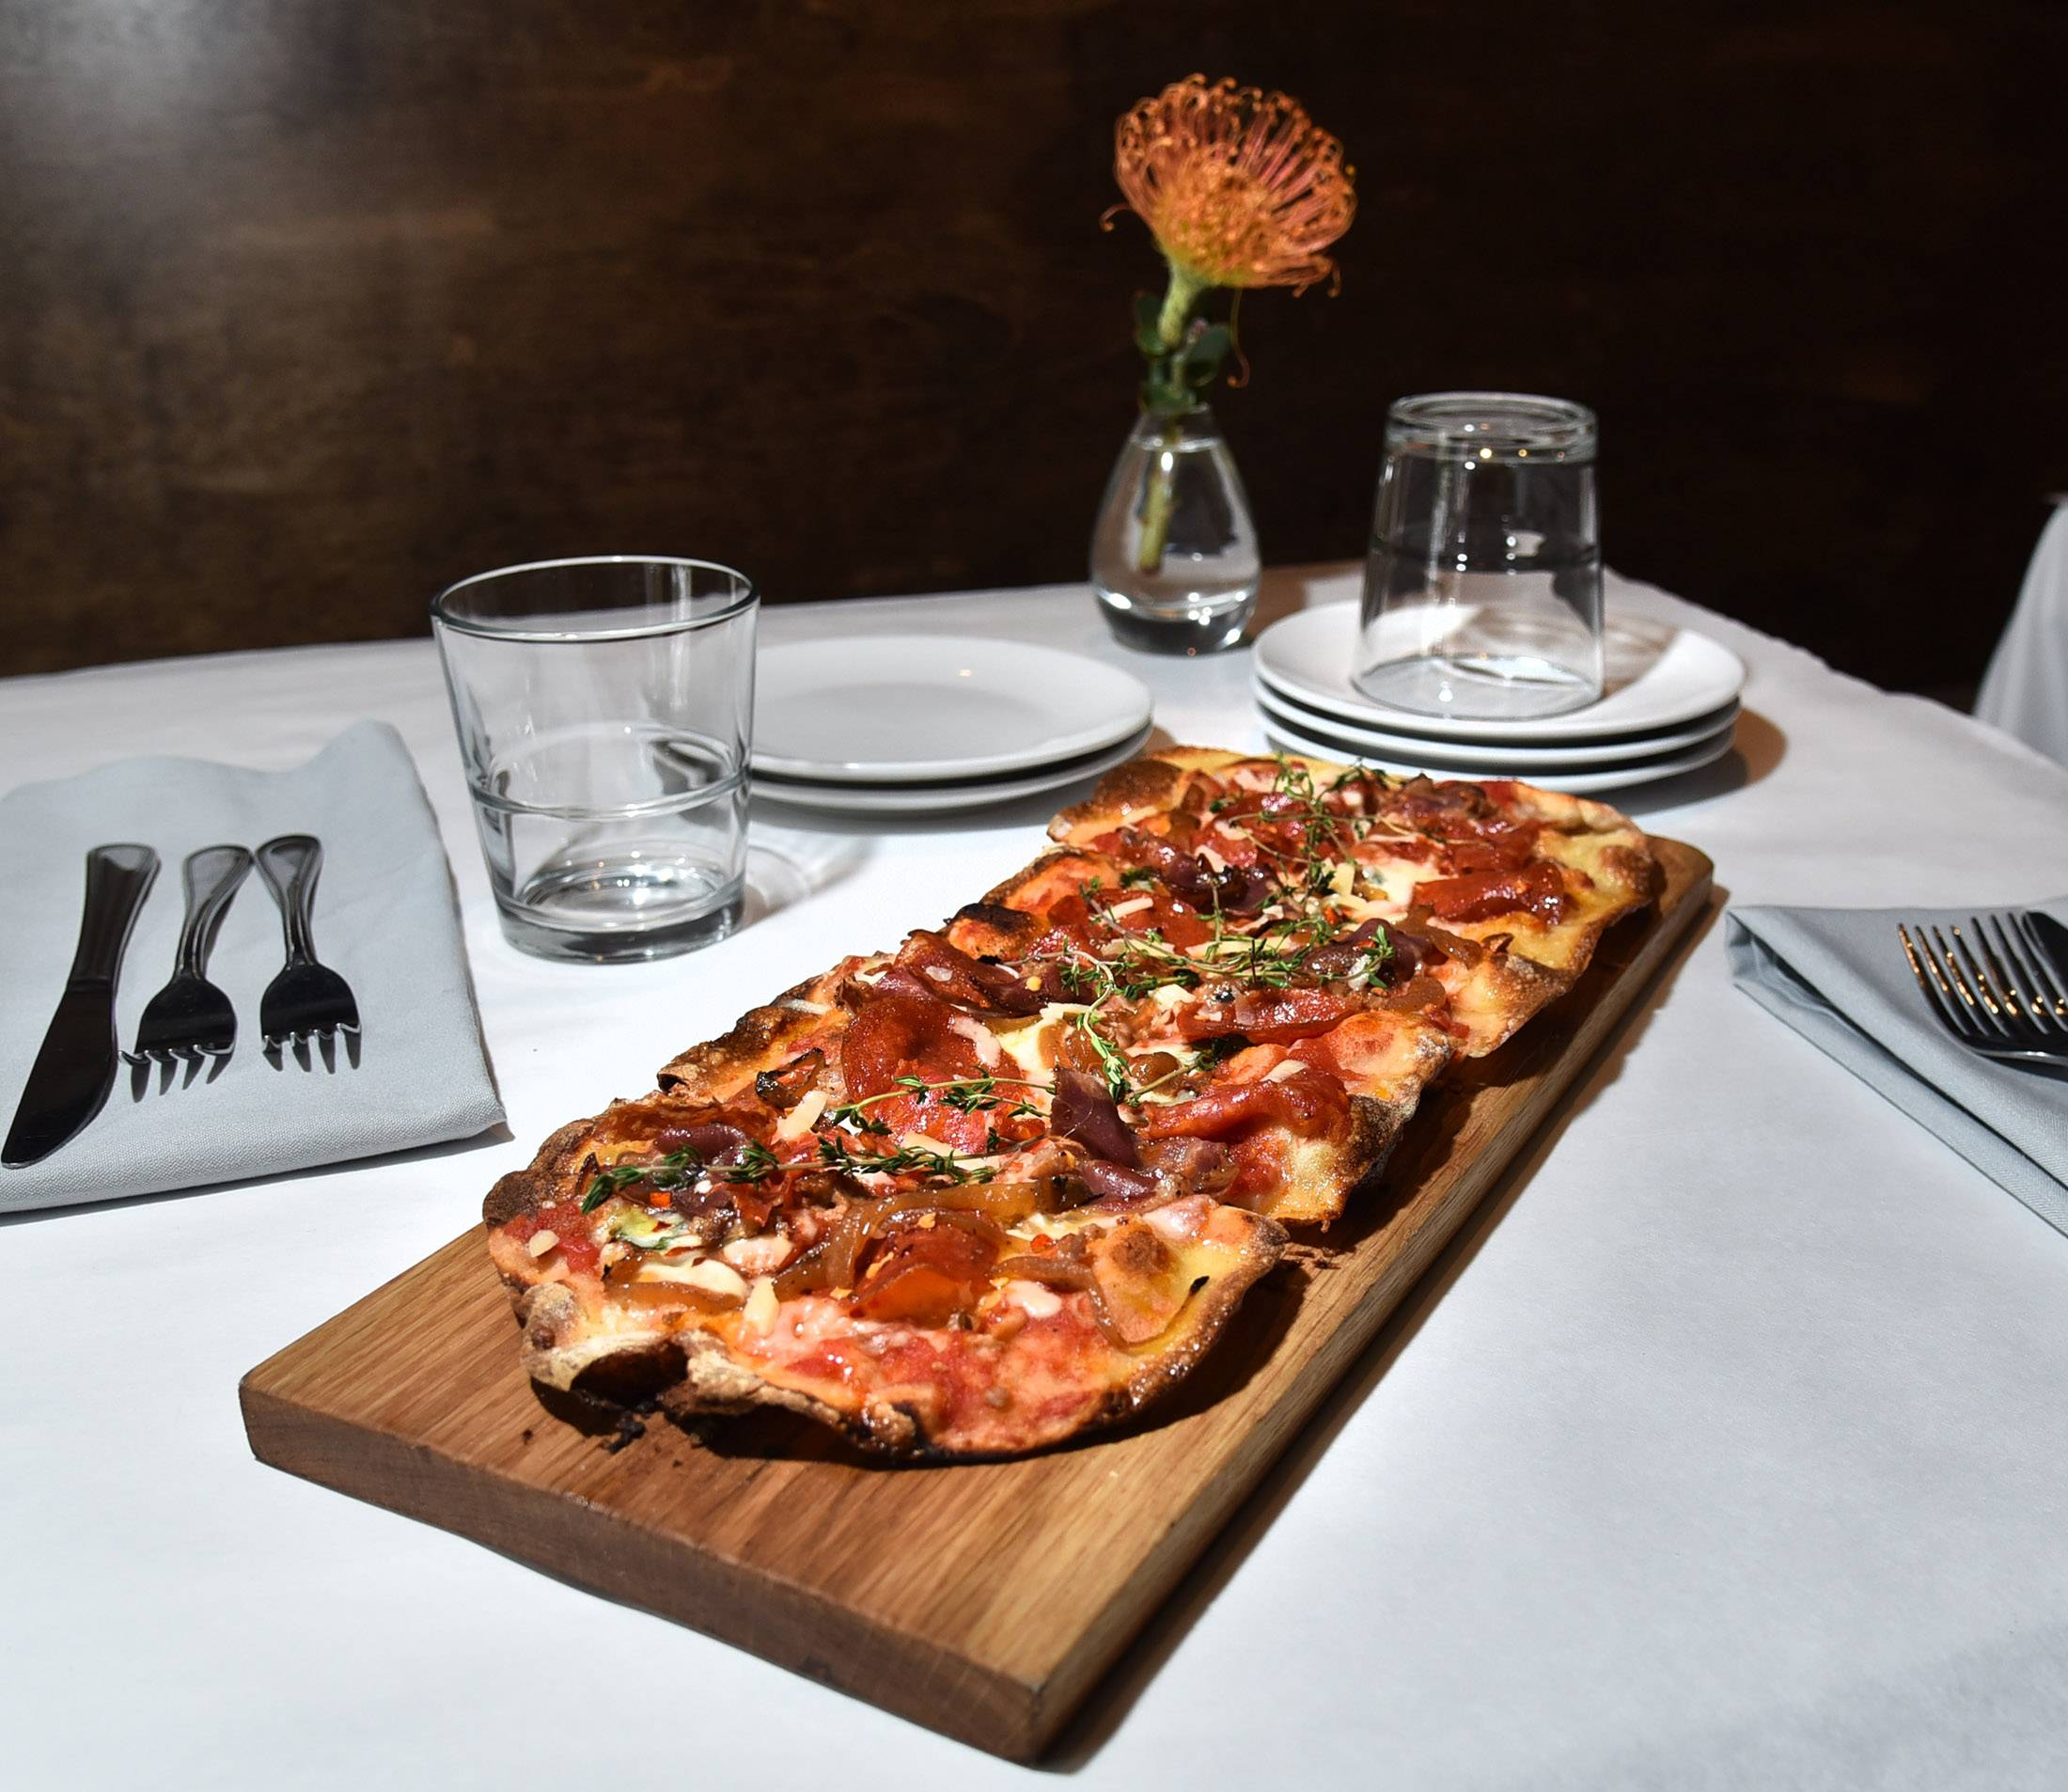 The Butcher Flatbread comes topped with a variety of meats at Livia Italian Eatery in Geneva.